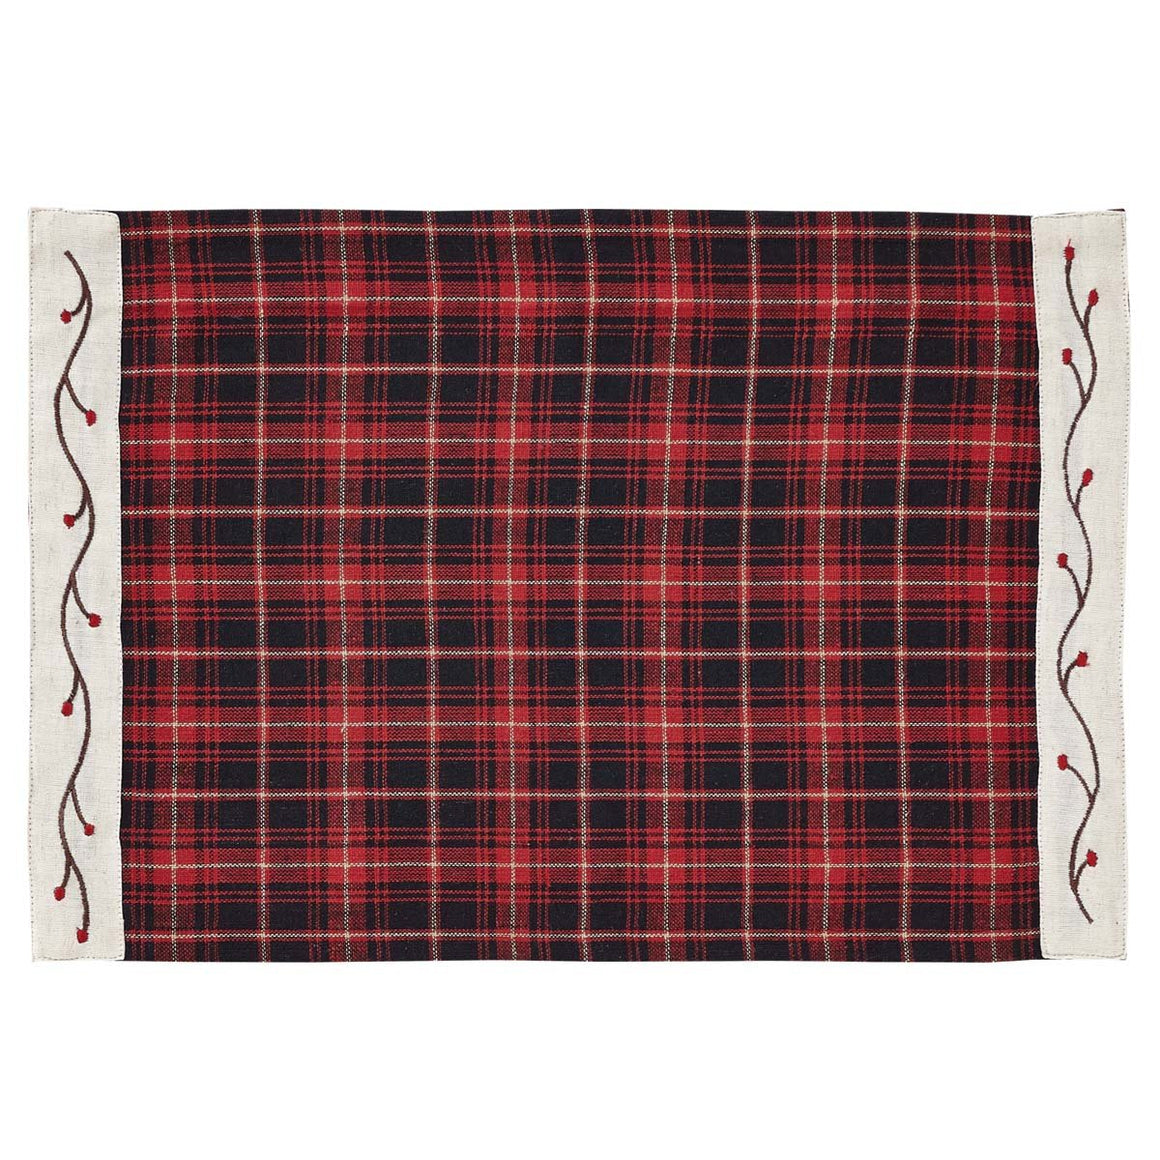 Seasons Greetings Placemat Set of 6 12x18